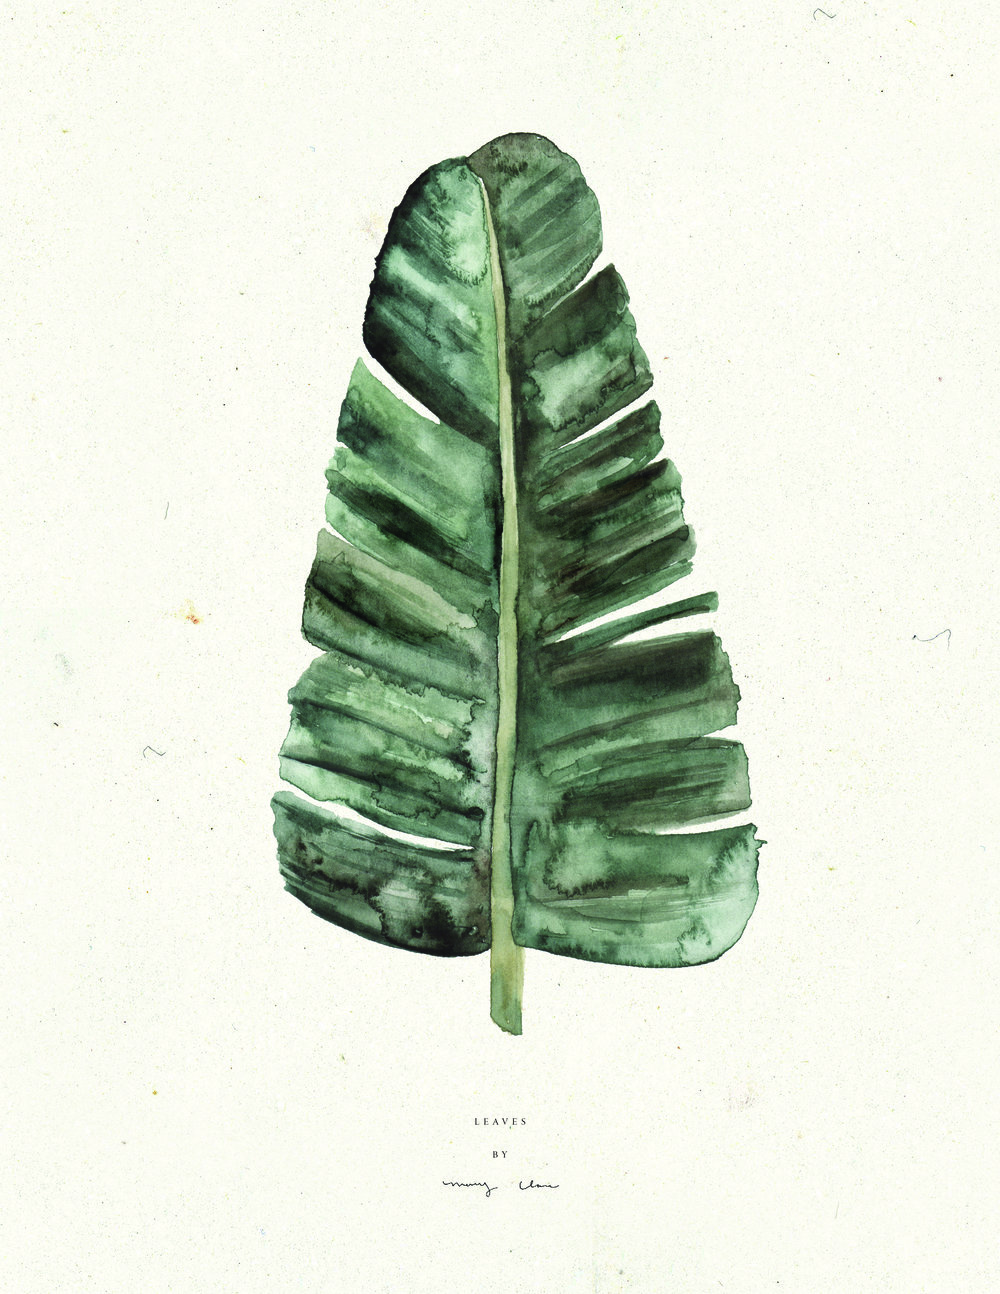 Leaves-watercolour-maryclarewilkie-03.jpg